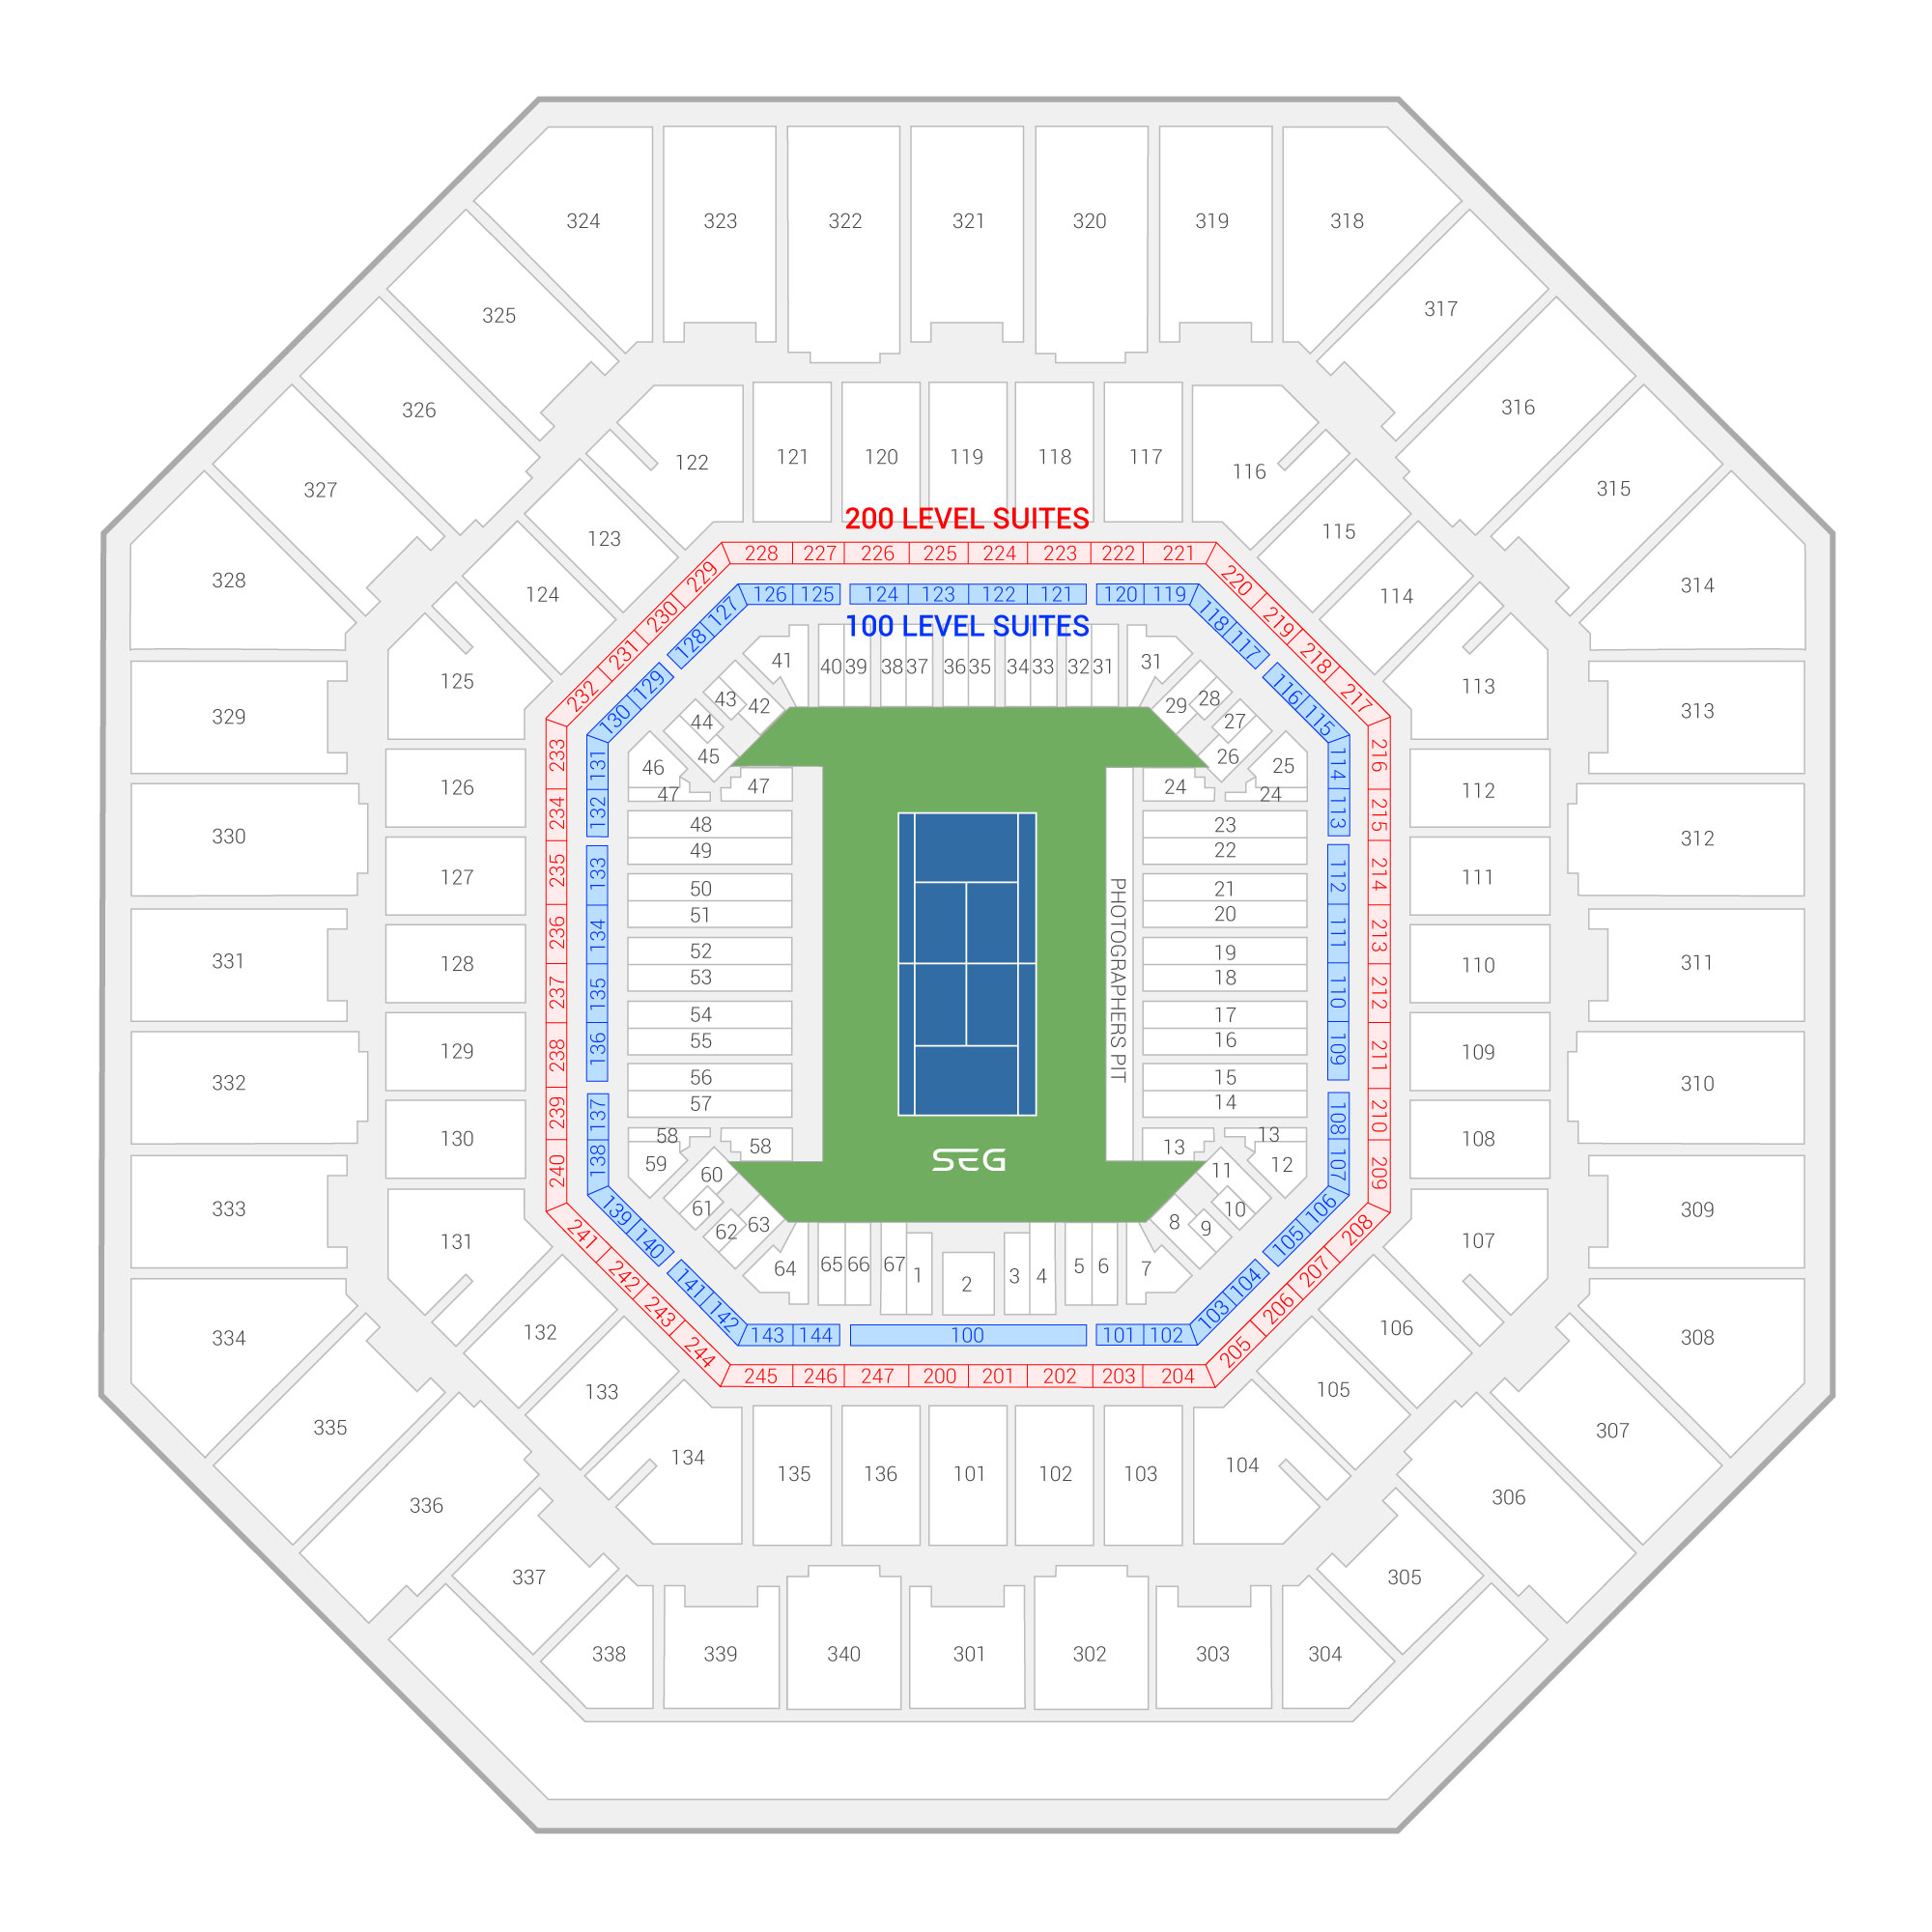 Arthur Ashe Stadium / US Open Tennis Championship Suite Map and Seating Chart